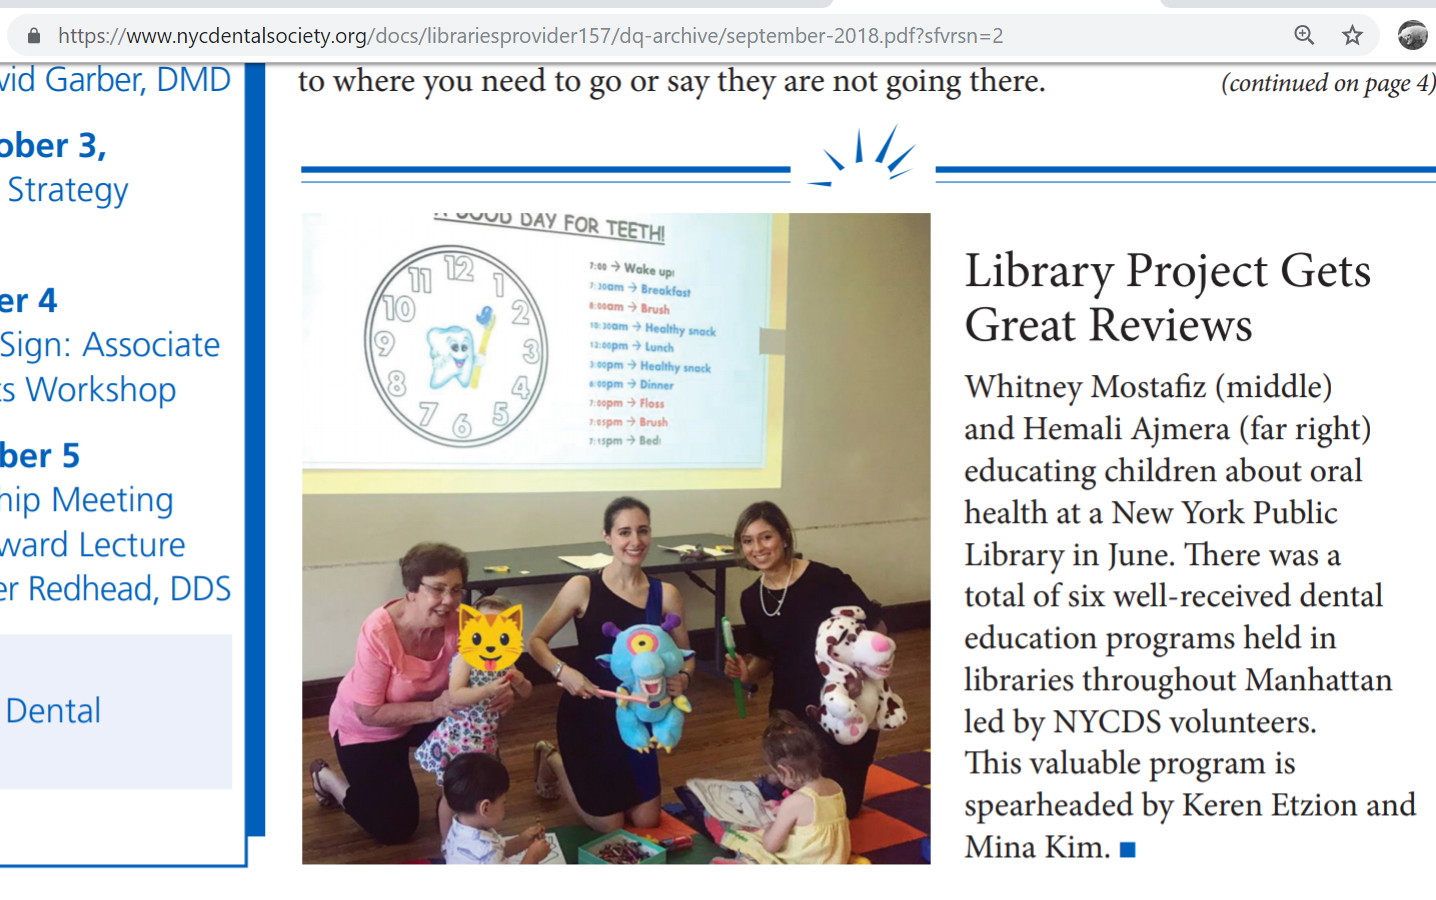 NYCDS Library Outreach